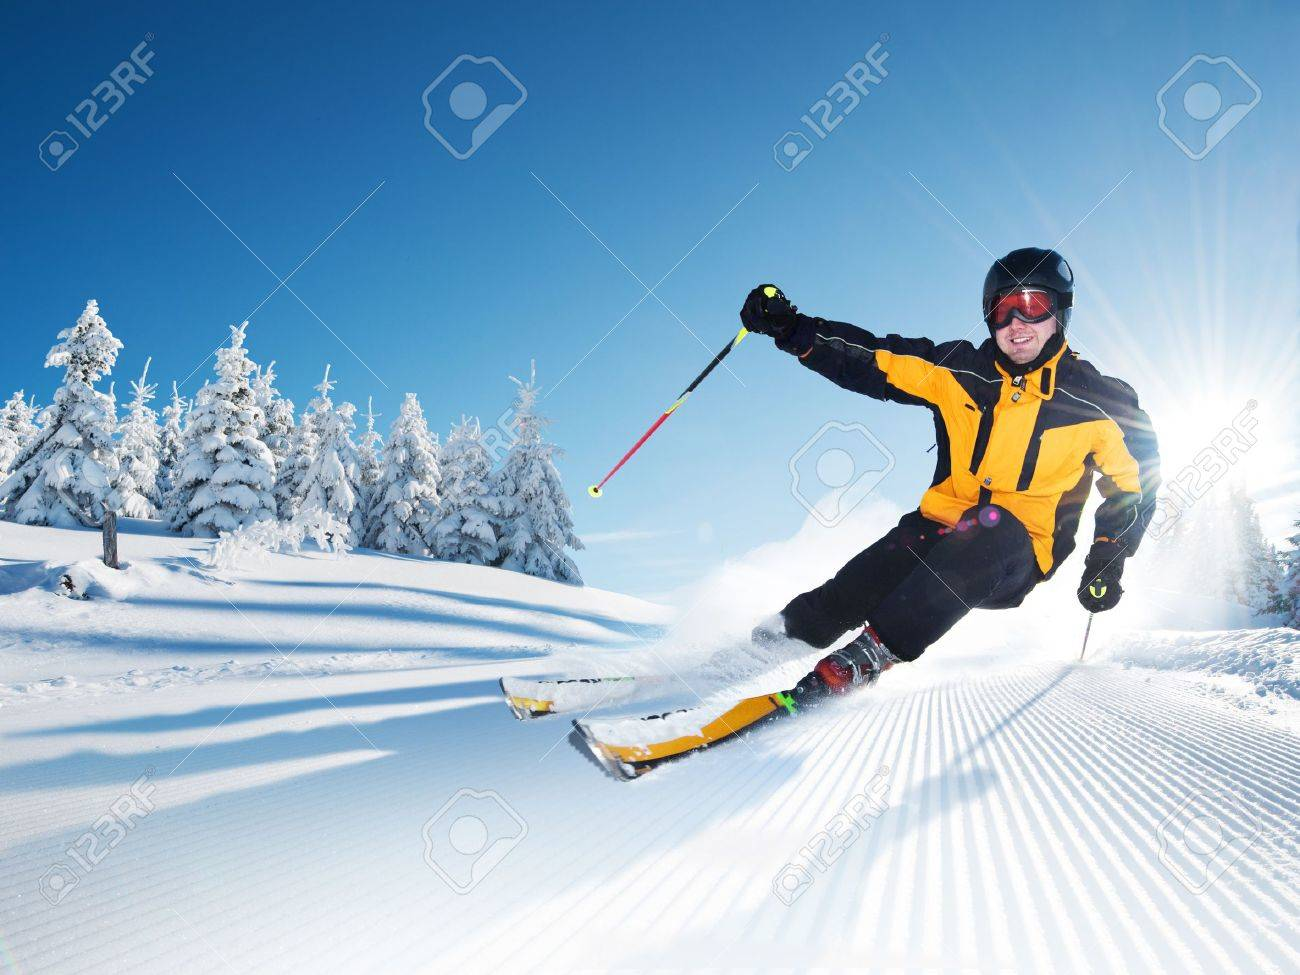 Skier in mountains, prepared piste and sunny day - 17753058